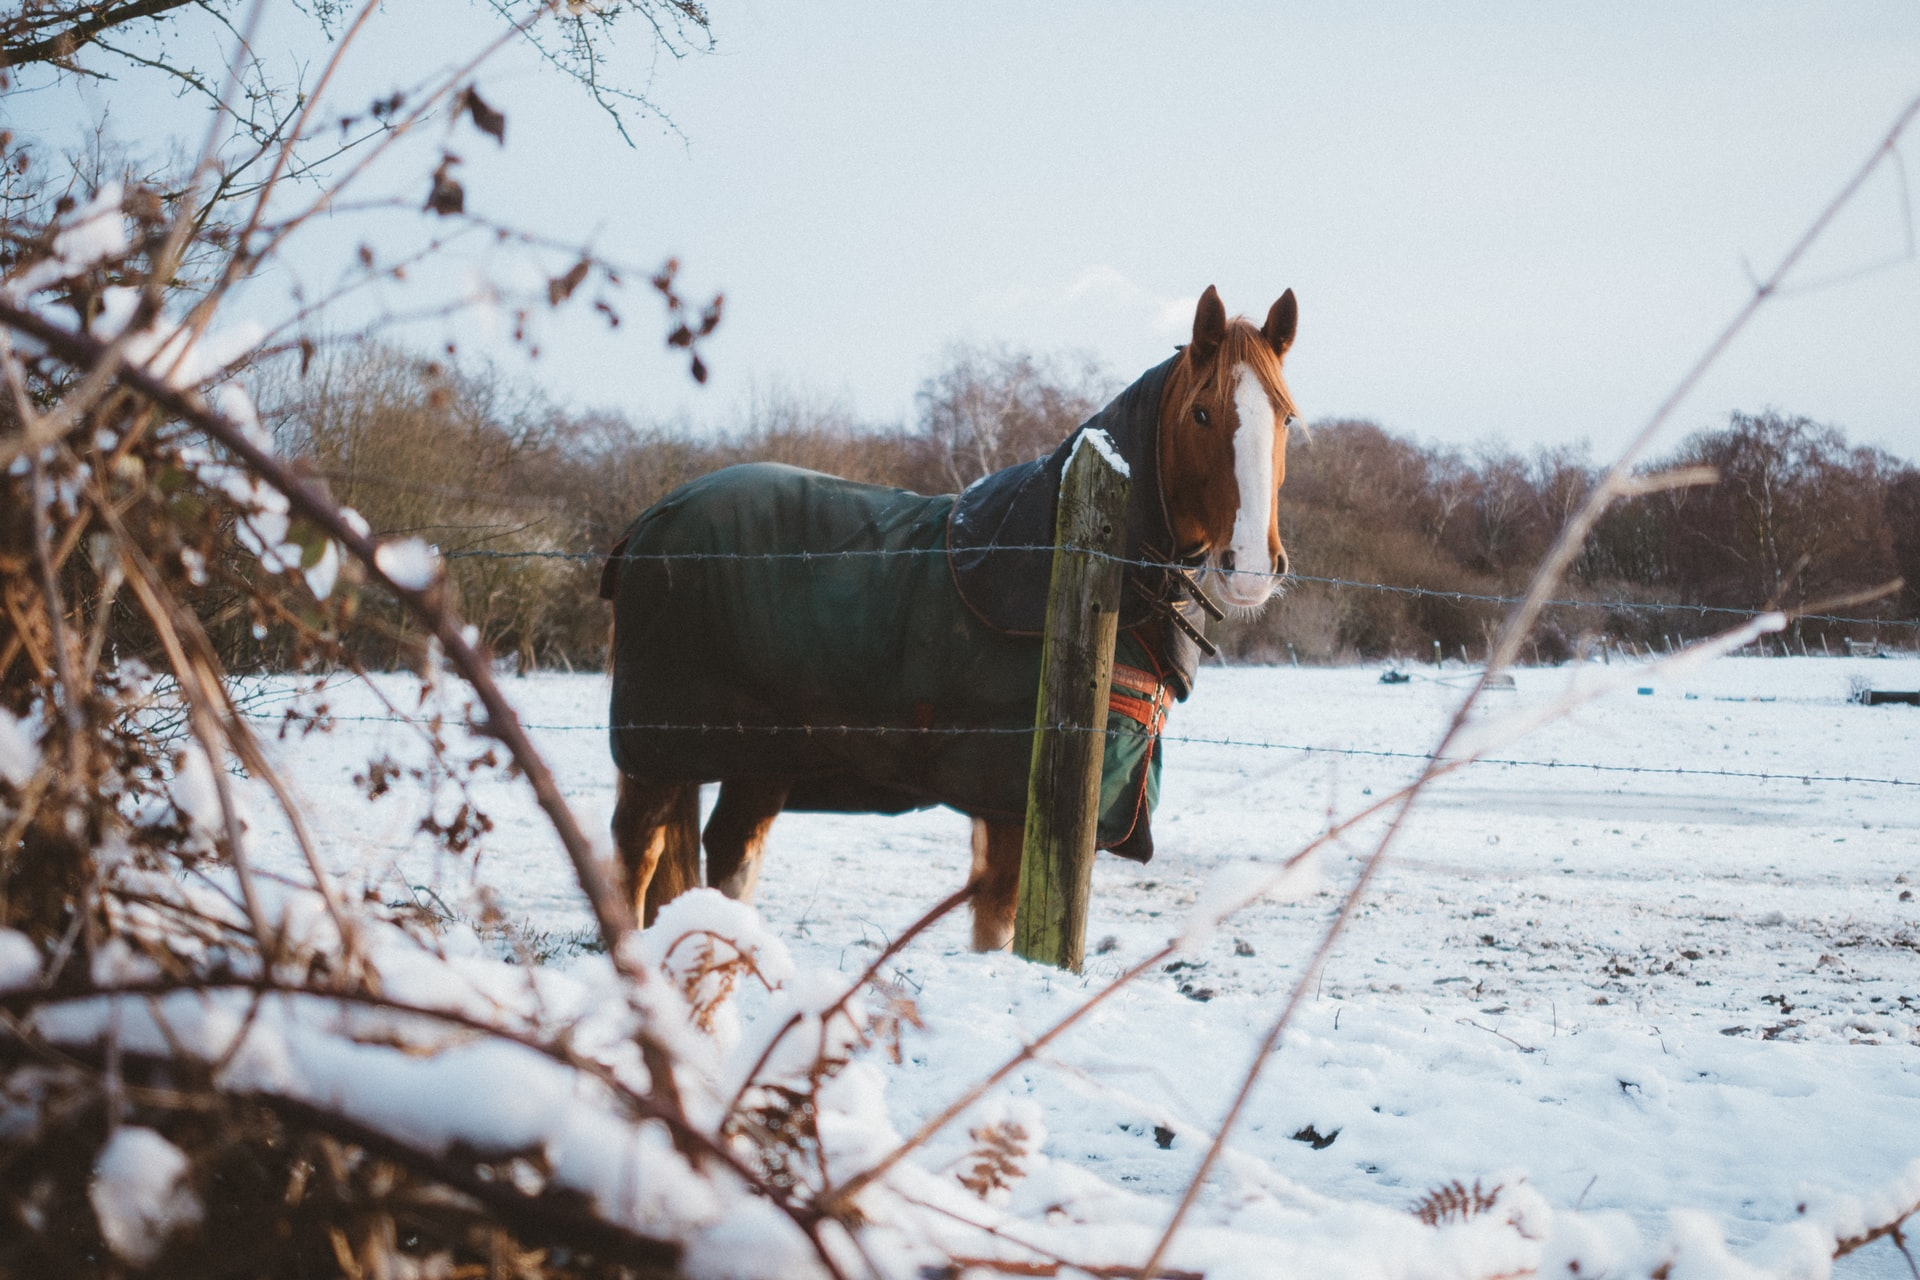 a horse wearing a blanket stands in a snowy field